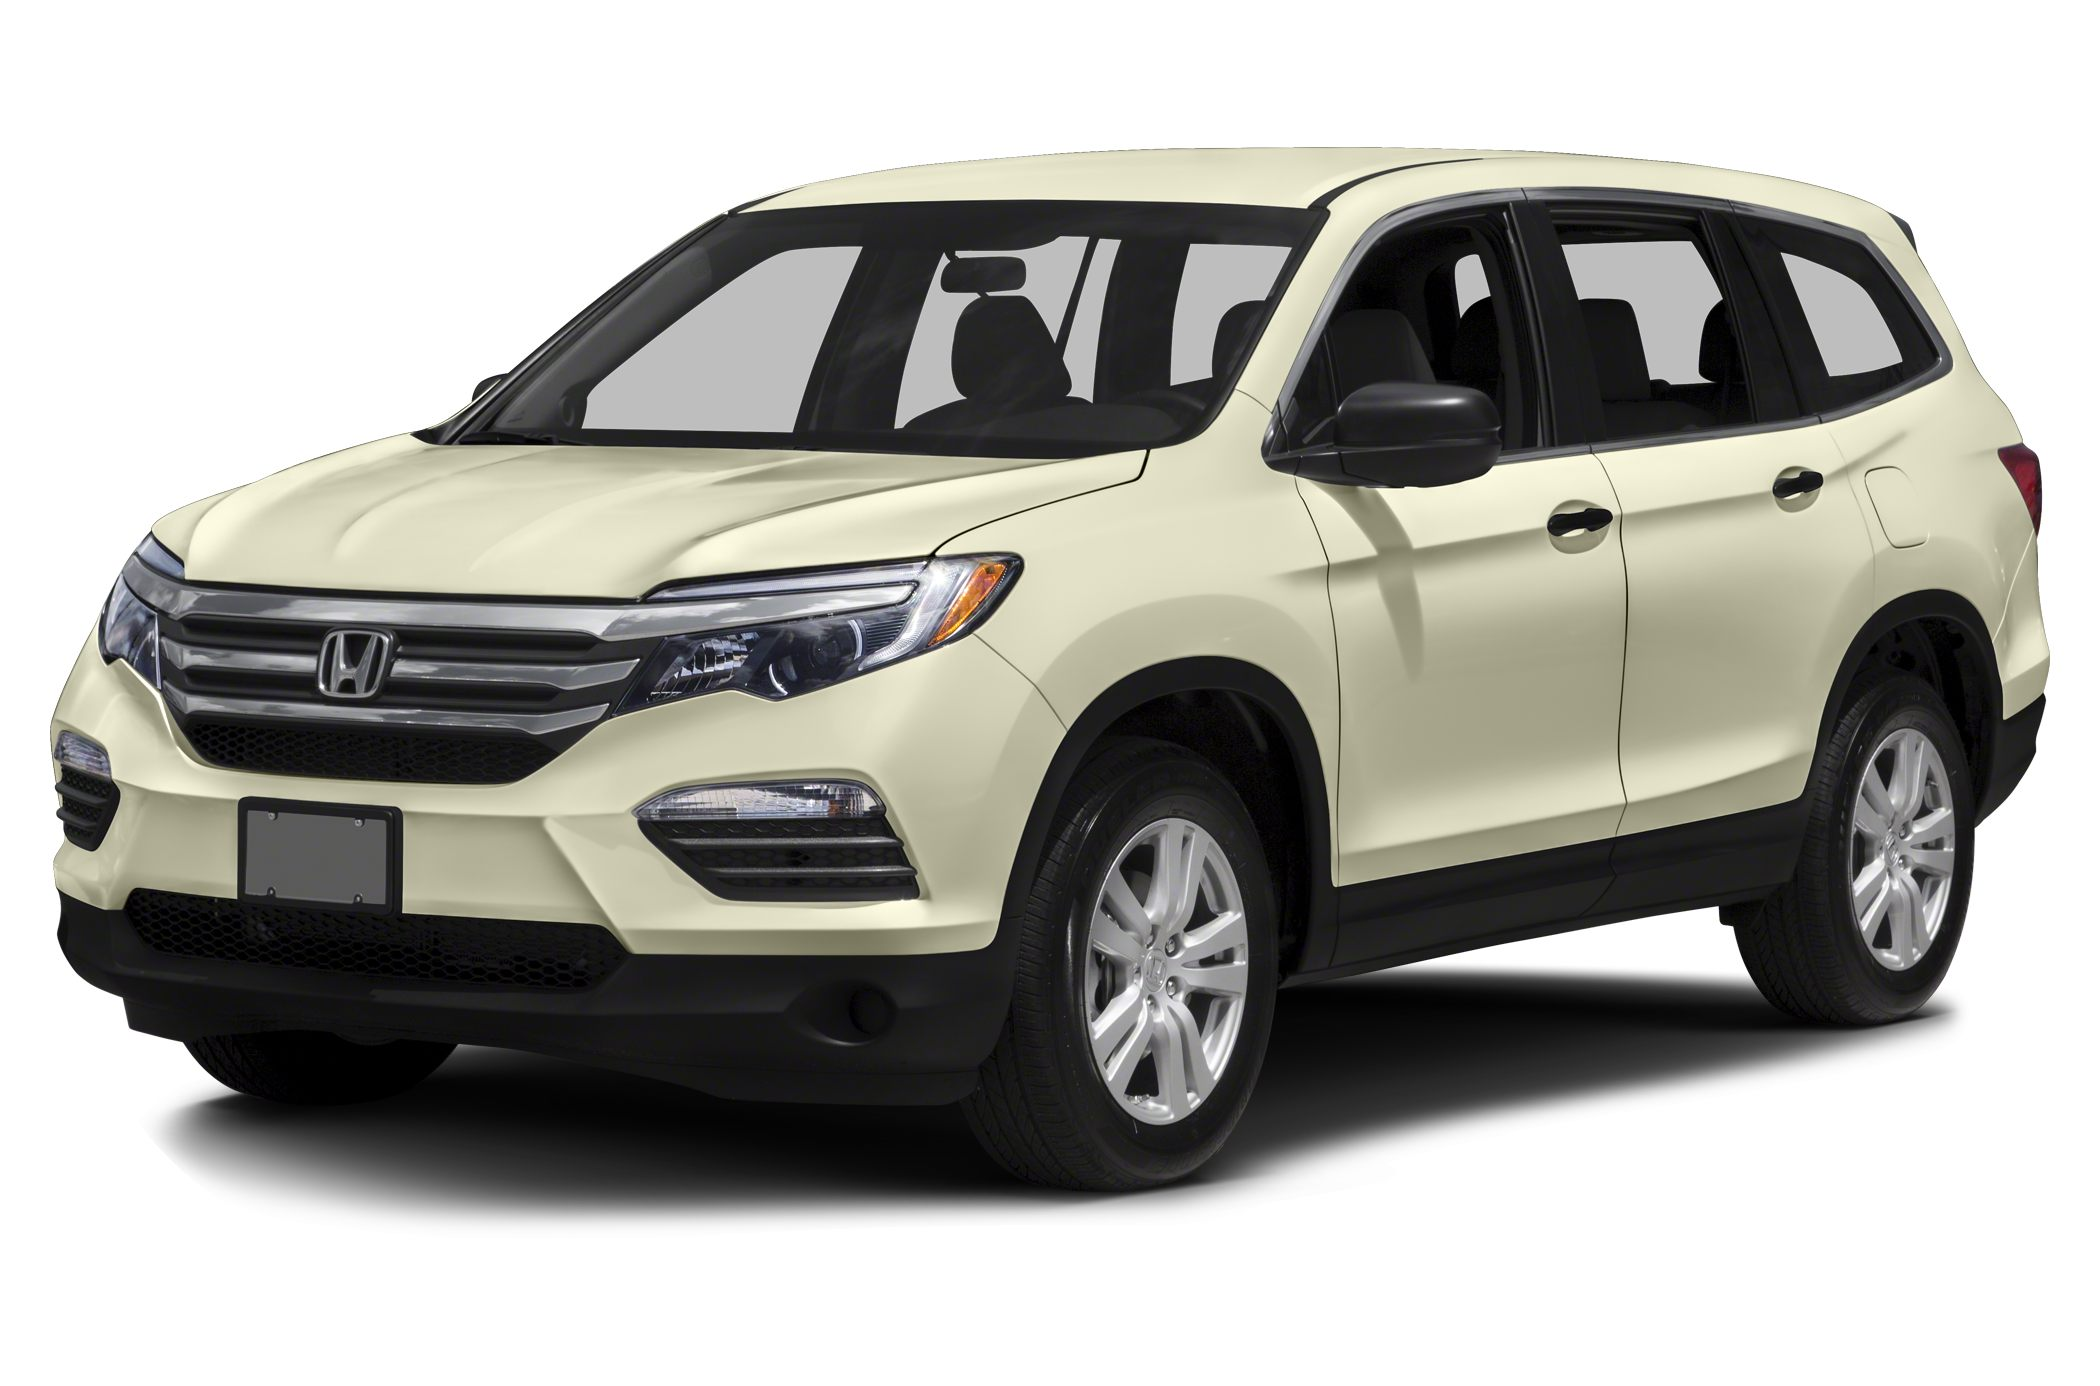 2016 Honda Pilot LX Seize the road with solid stability and traction control Sticking power with